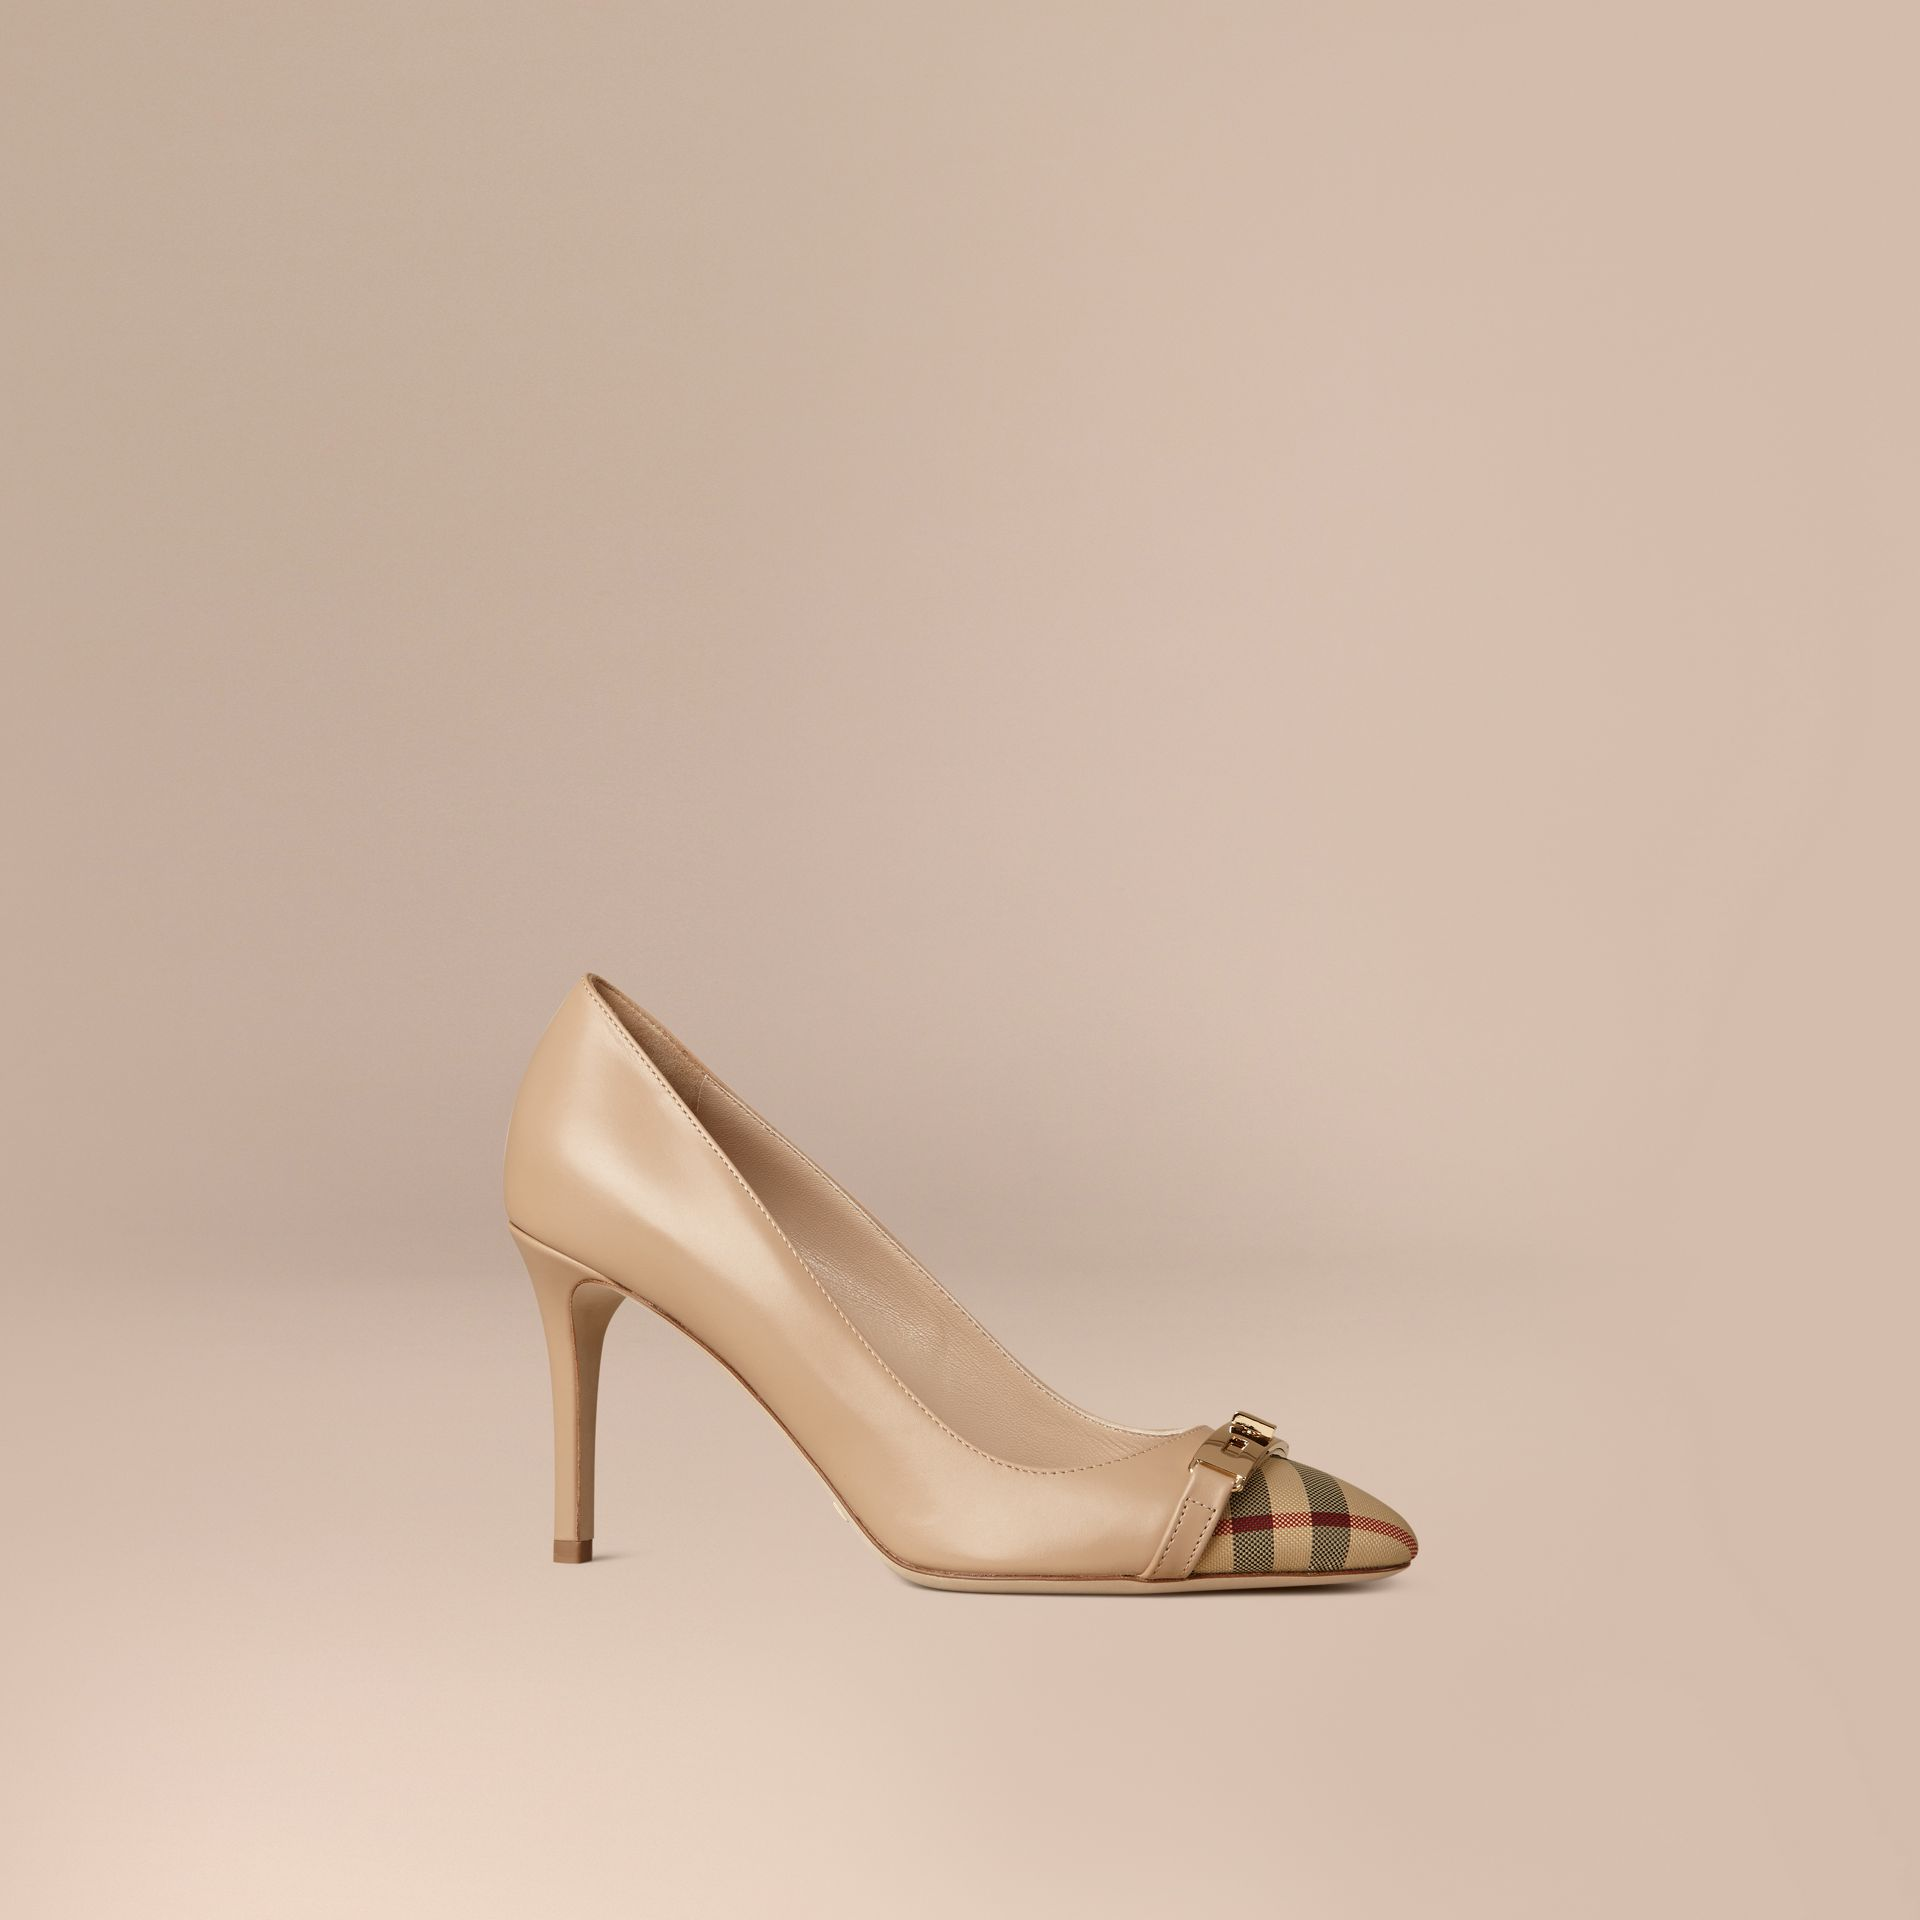 Horseferry Check Leather Pumps in Light Nude - Women | Burberry Hong Kong - gallery image 1